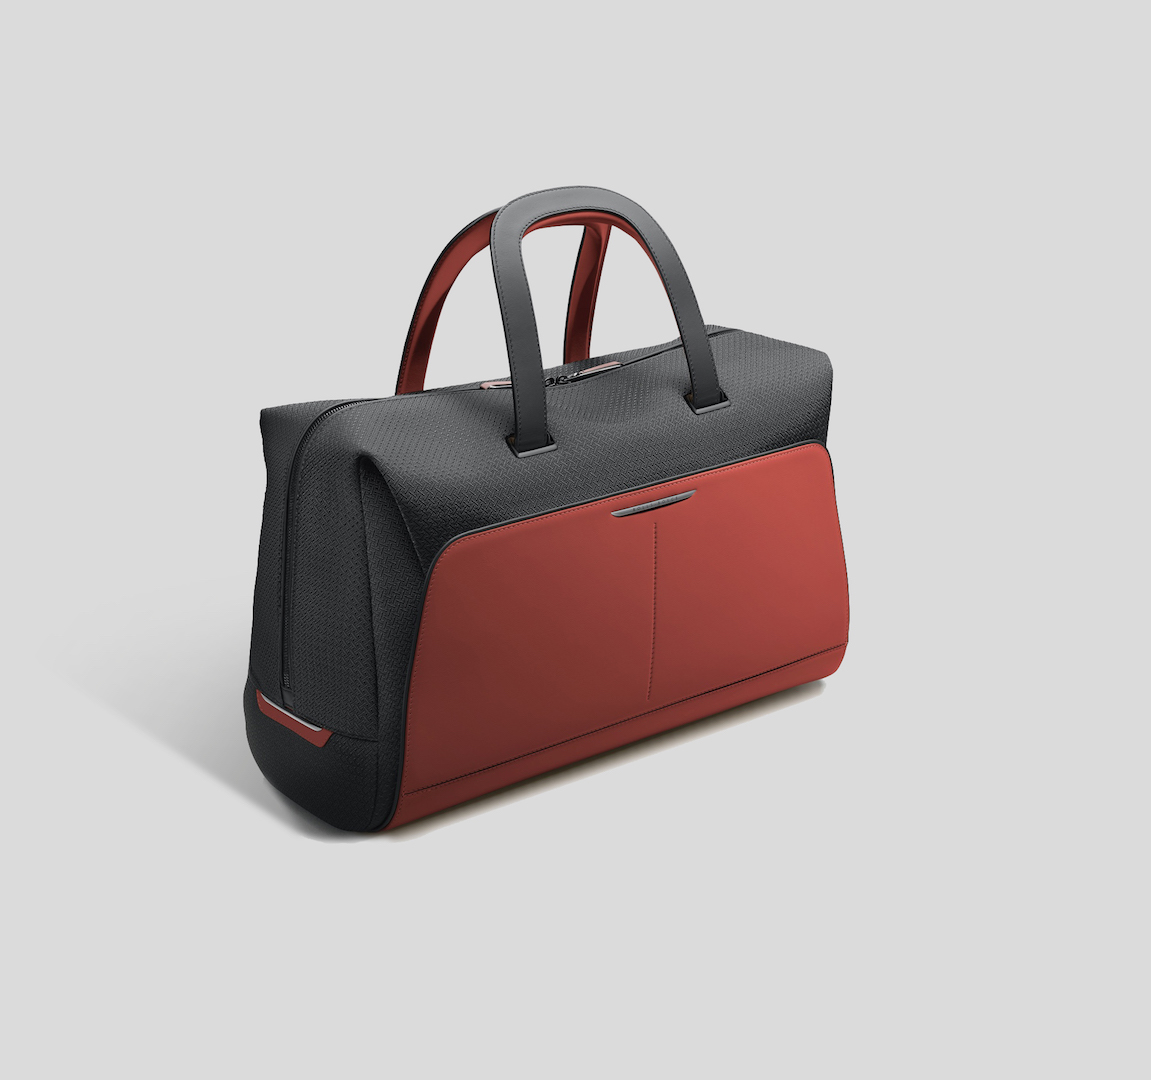 Rolls-Royce Motor Cars new Black Badge edition 'Escapism Luggage Collection'